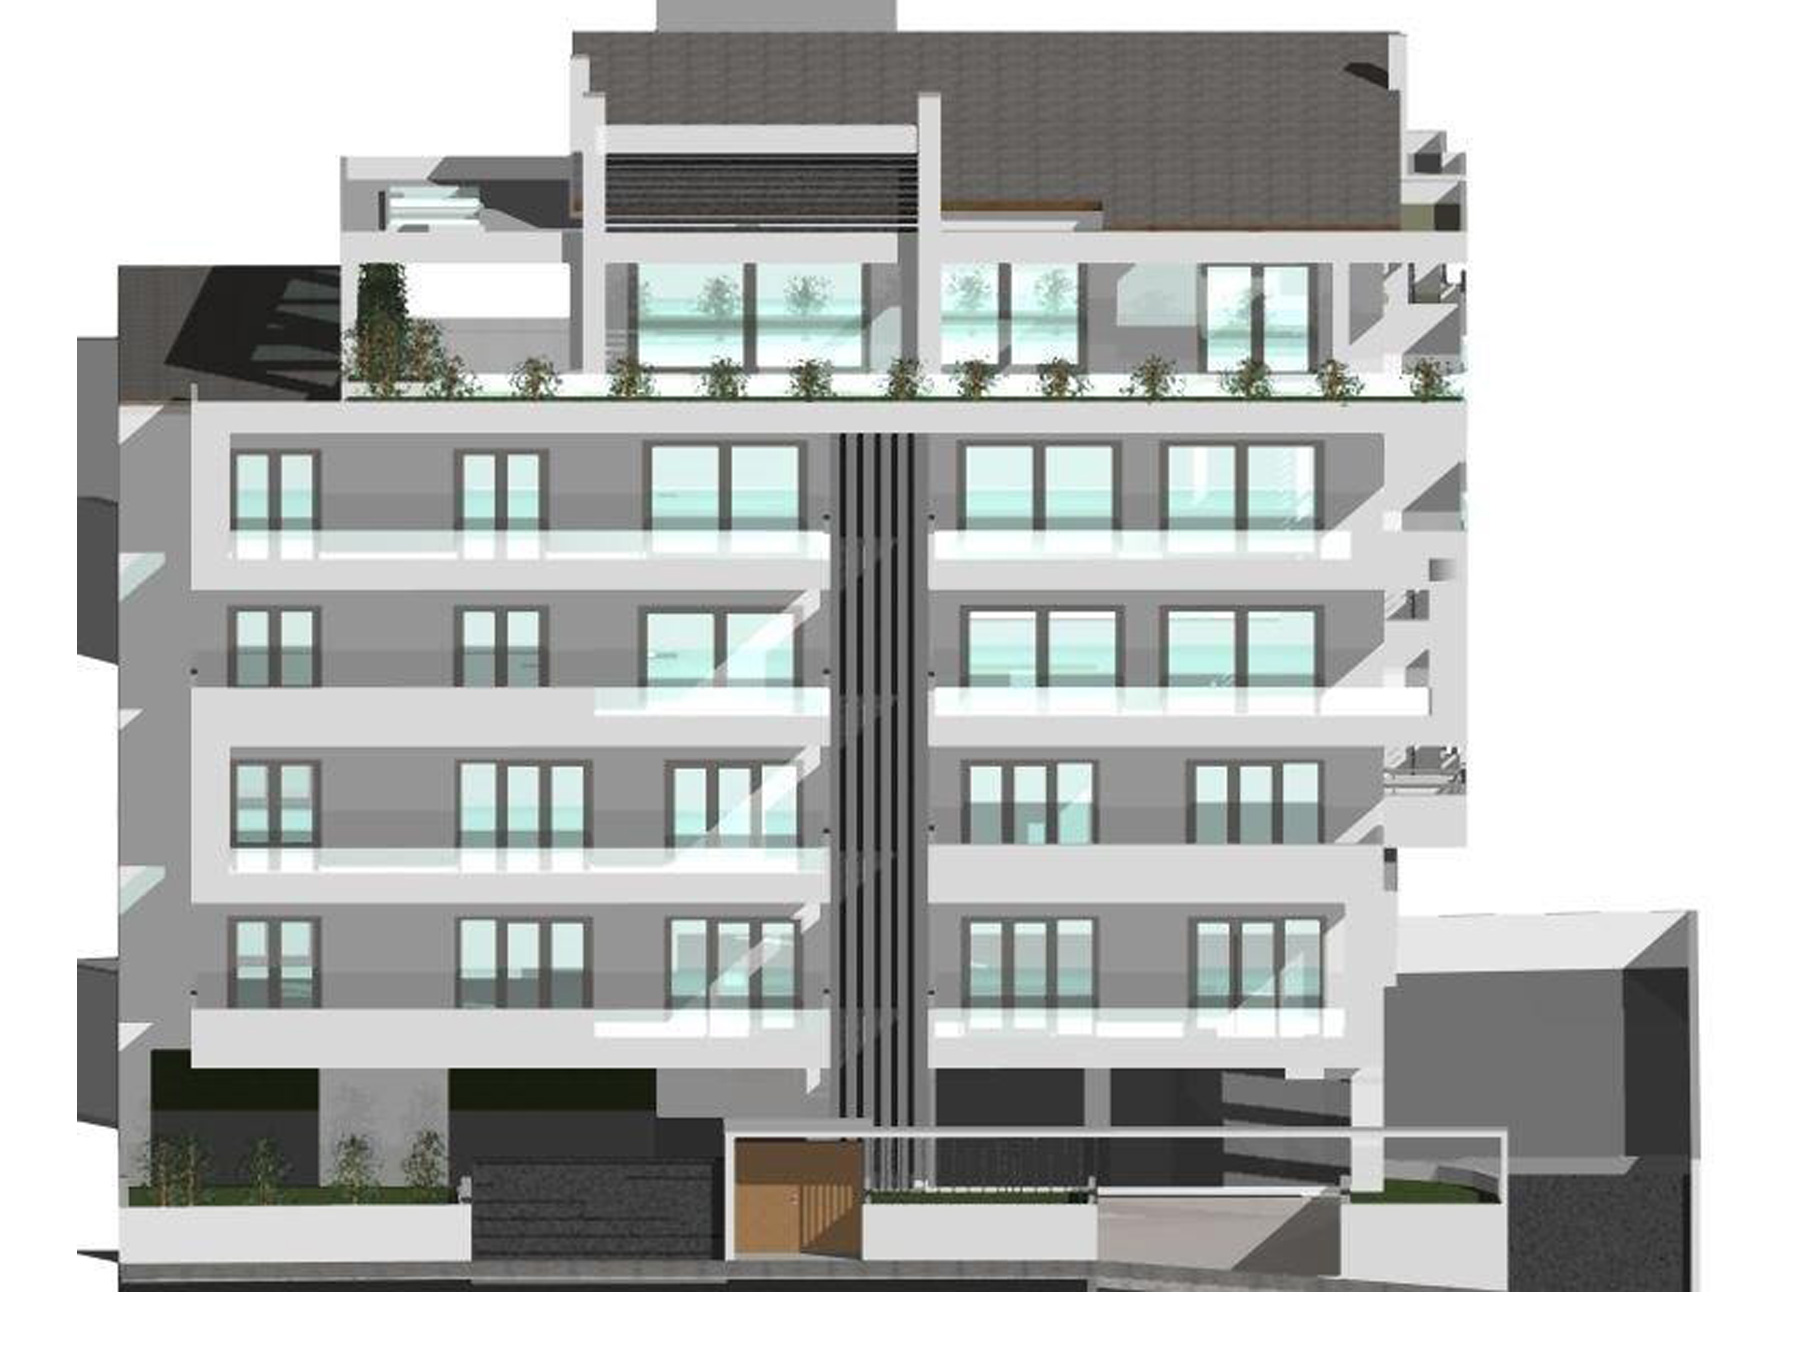 For sale under construction 2 bedroom apartment 83 sq.m. 4th floor with parking and storage in the center of Ioannina